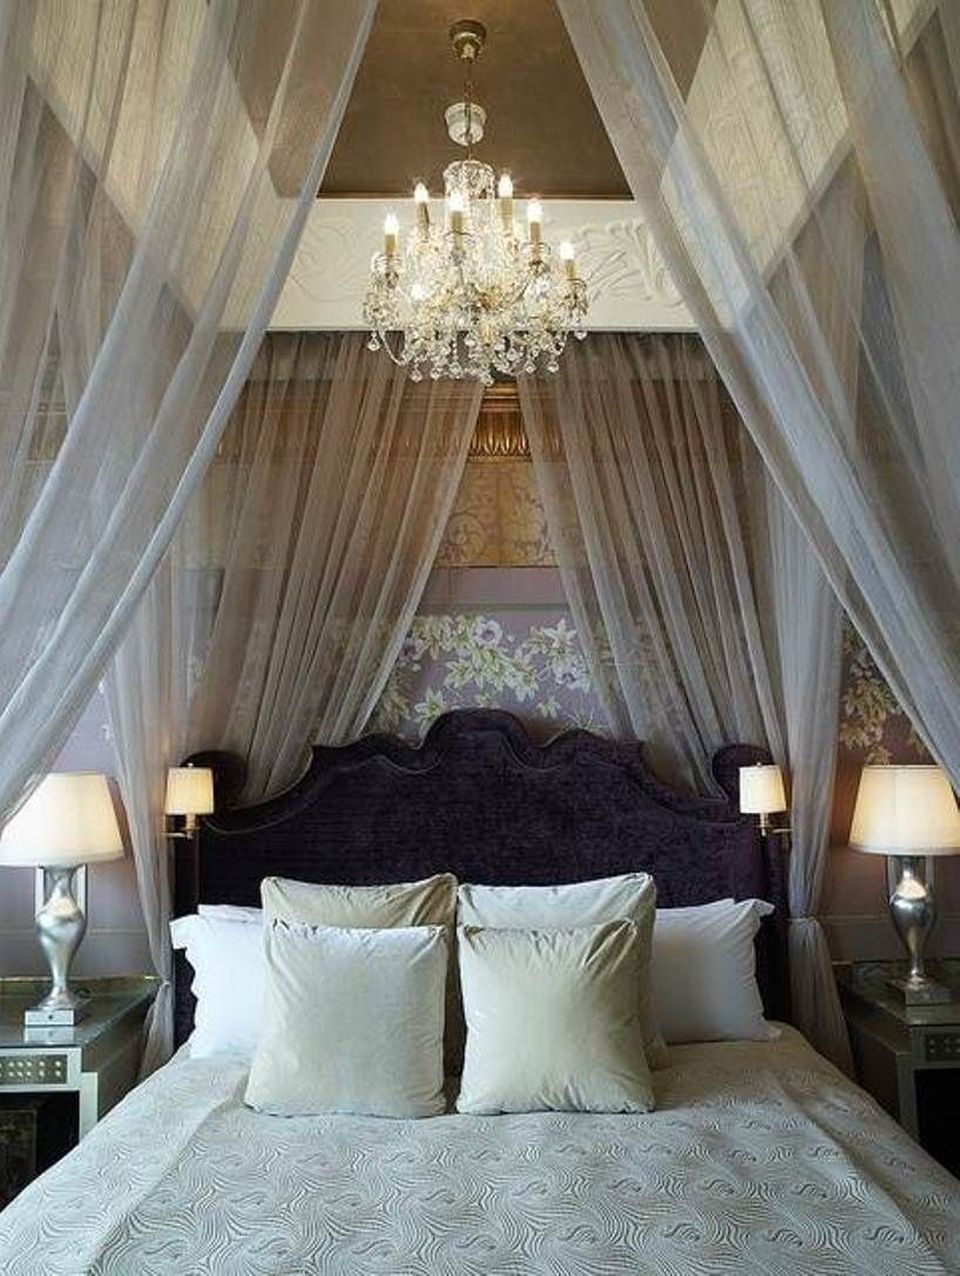 Most Romantic Bedroom Decor: 99 Lovely Romantic Bedroom Decorations Ideas For Couples